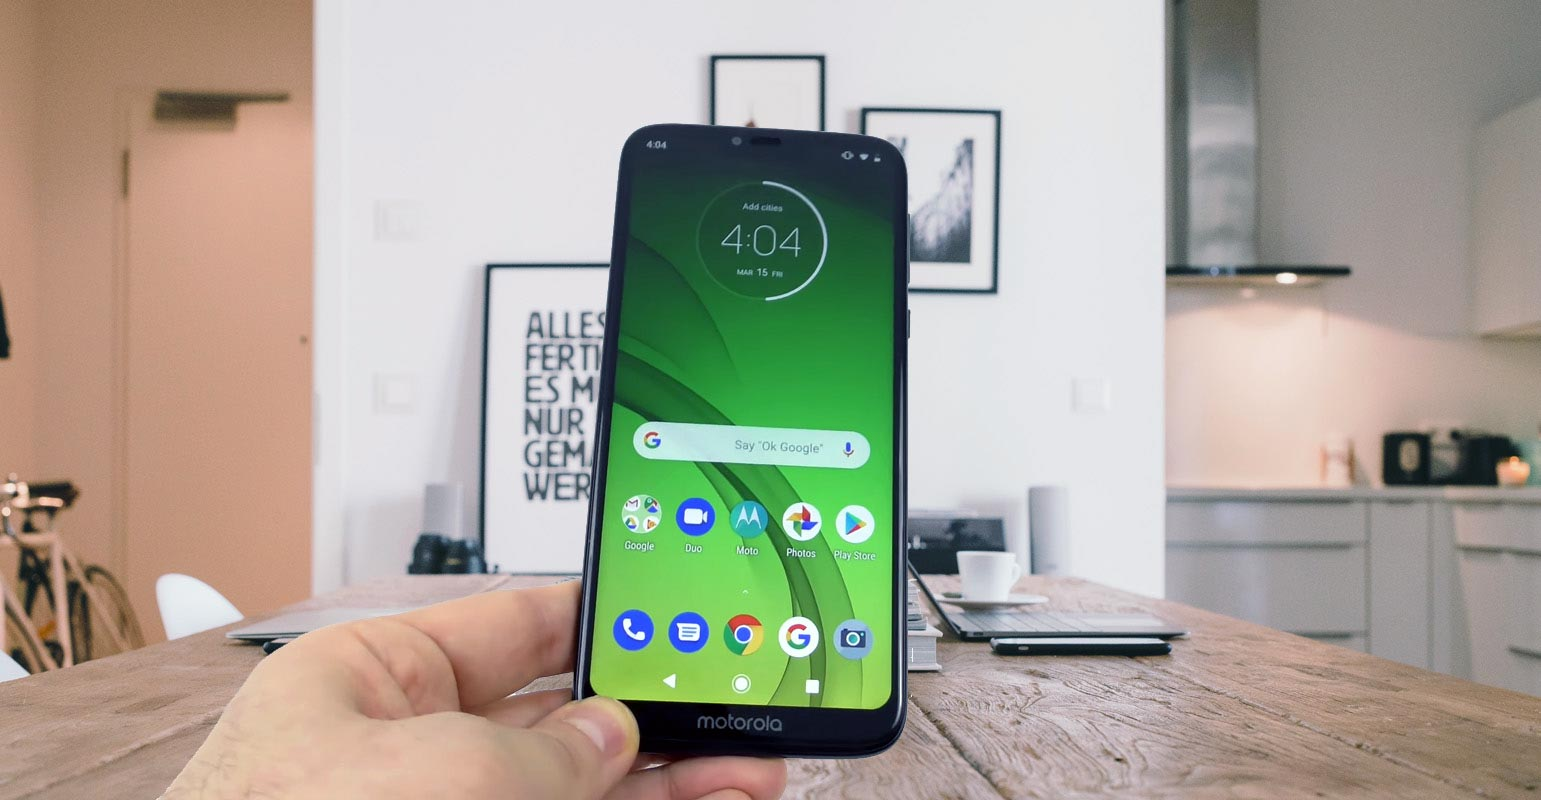 Moto G7 Power Unlocked screen in the hand